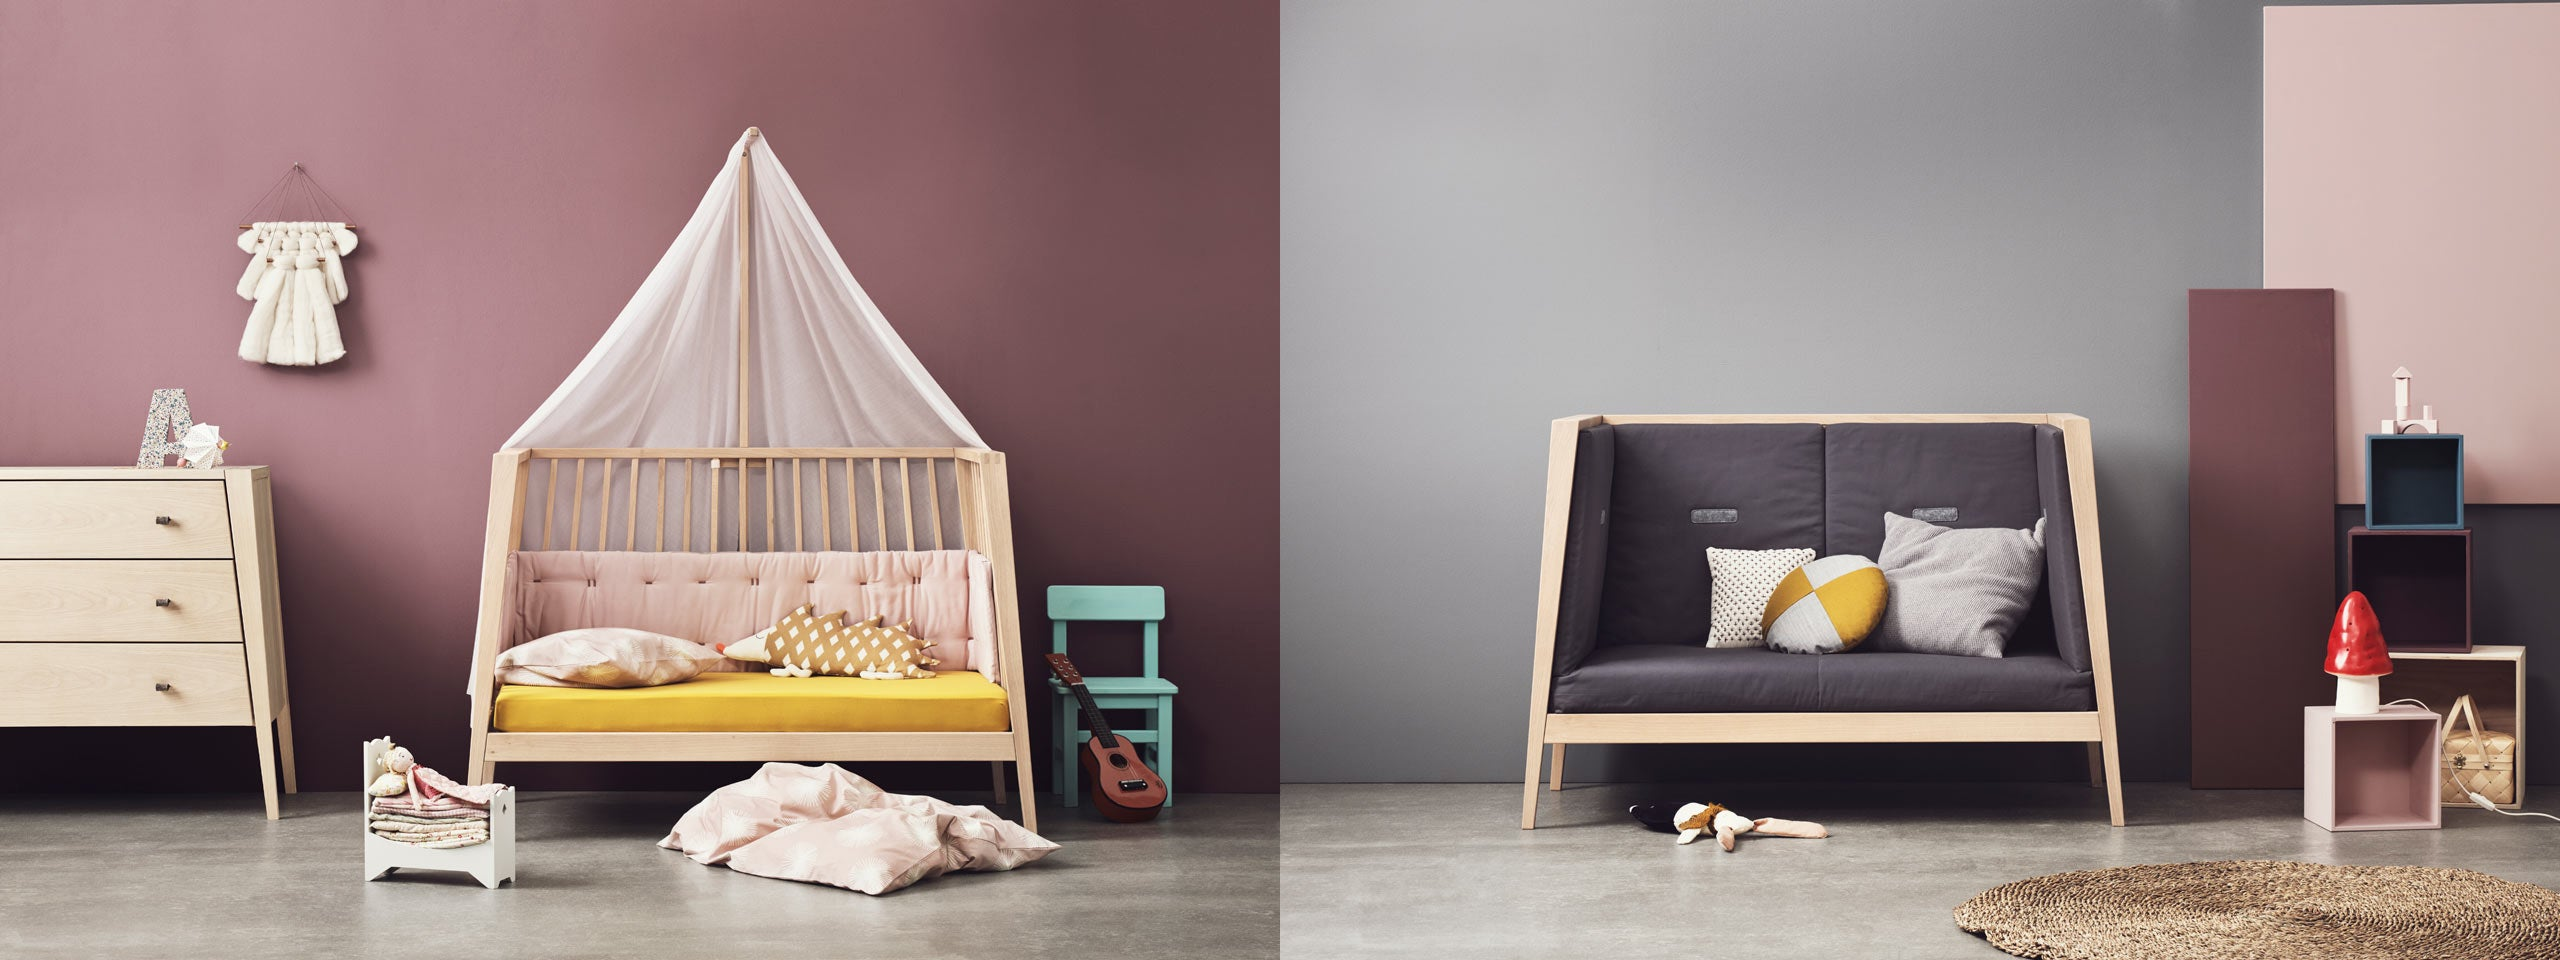 Image Source: http://www.leander.com/linea/baby-cot/